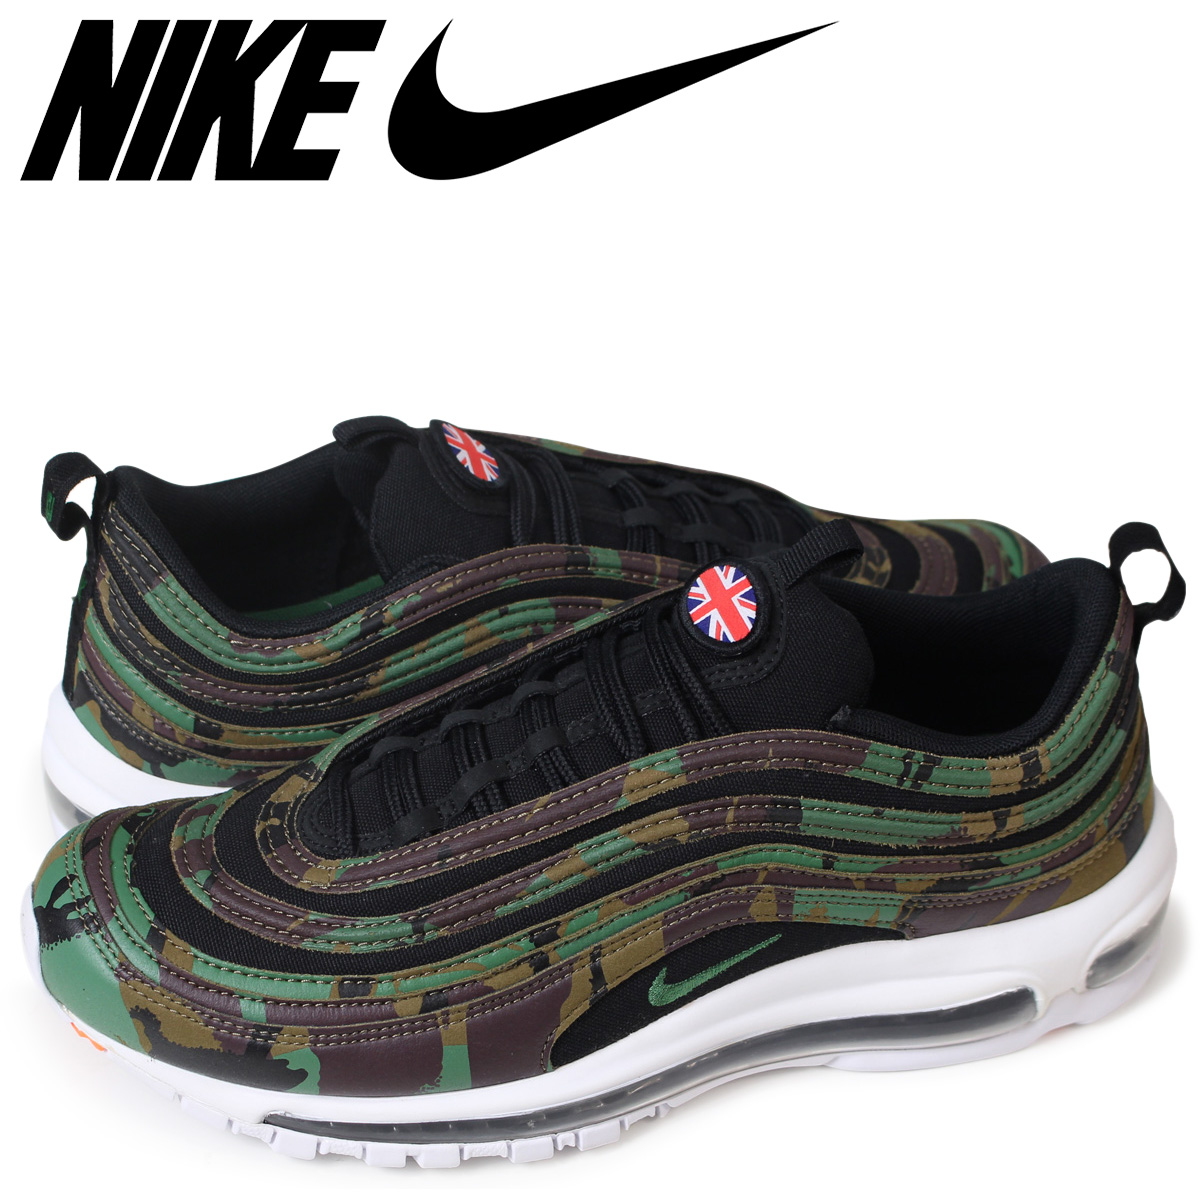 new style 7a271 928f6 NIKE AIR MAX 97 OG UK CAMO Kie Ney AMAX 97 sneakers men AJ2614-201 black  [185]